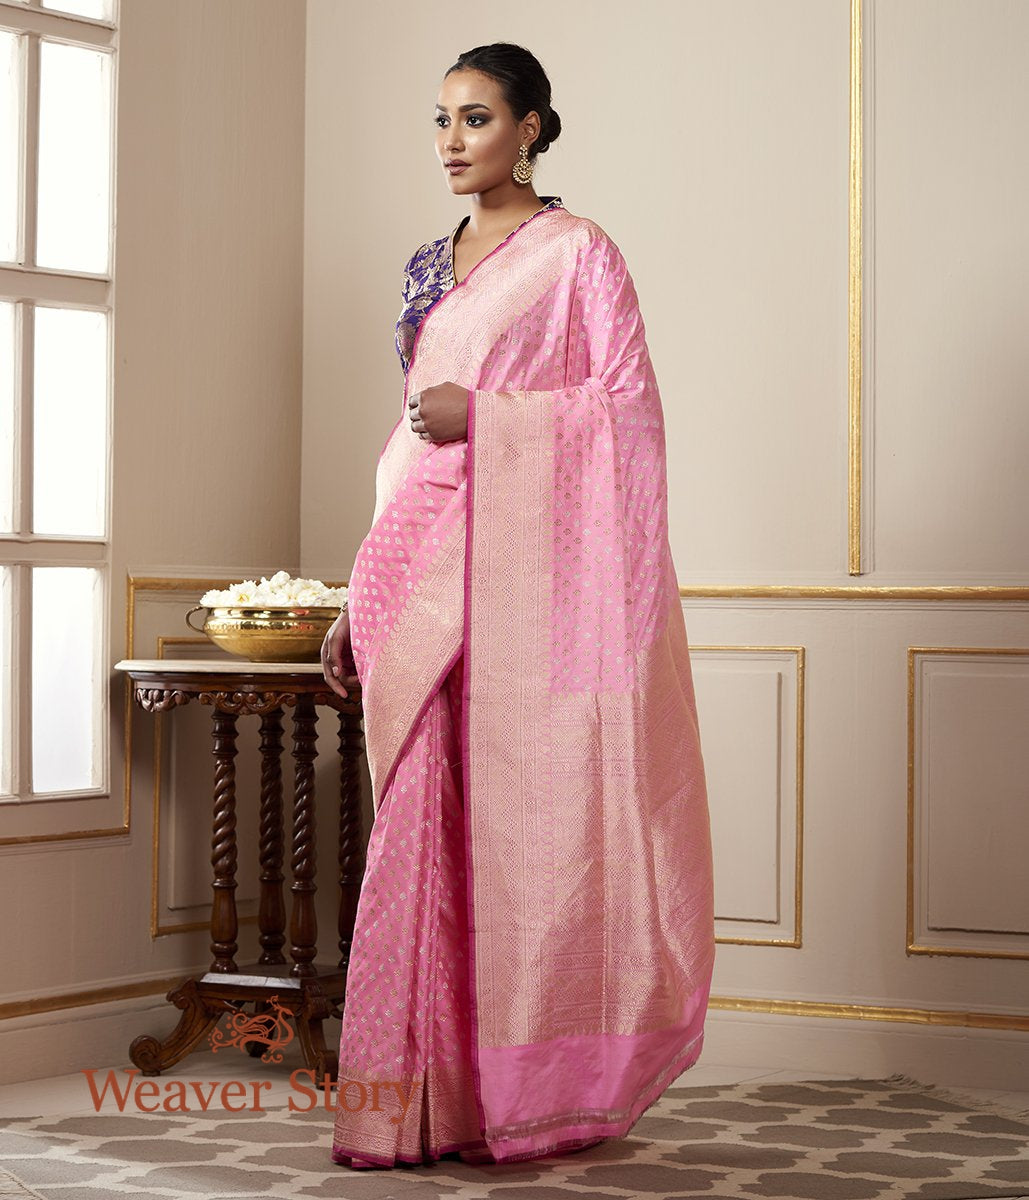 Handwoven Pink Banarasi Jangla with all over Booti Woven in Silver Zari